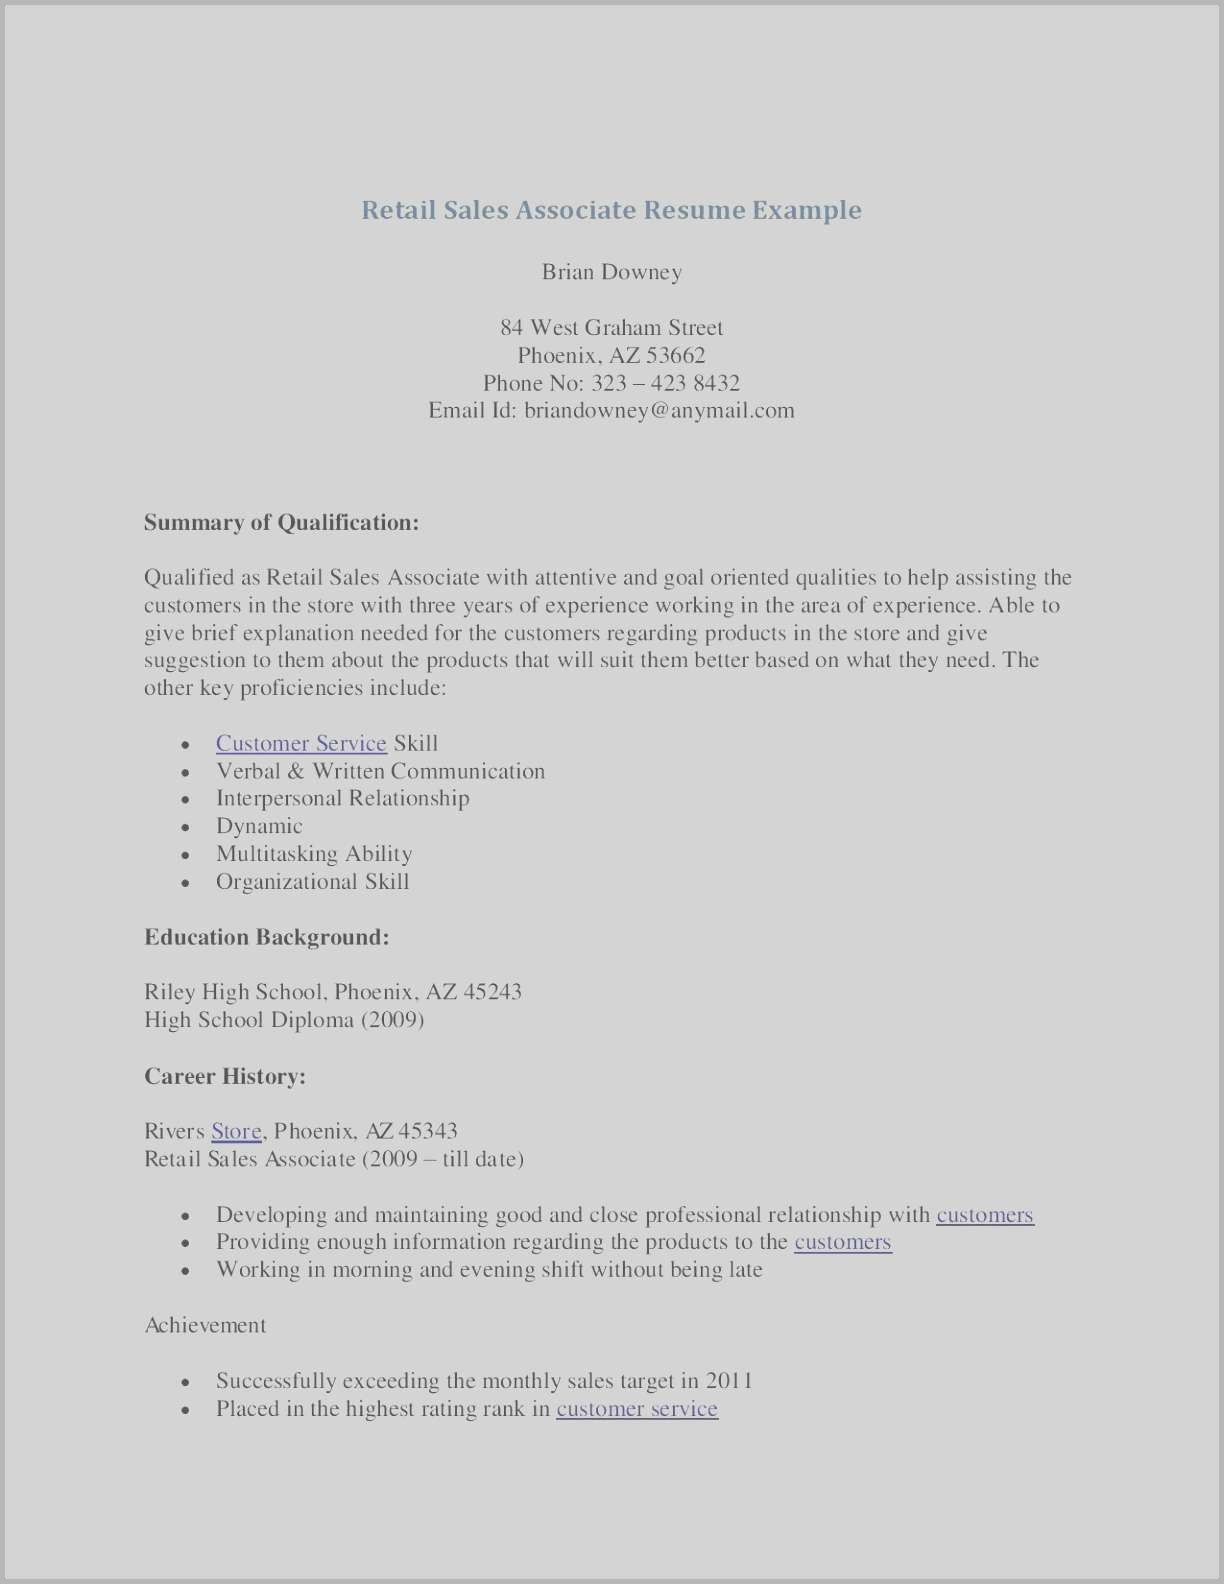 Sales associate Resume Template - Sales associate Resume Examples Lovely Sample Resume Retail Sales